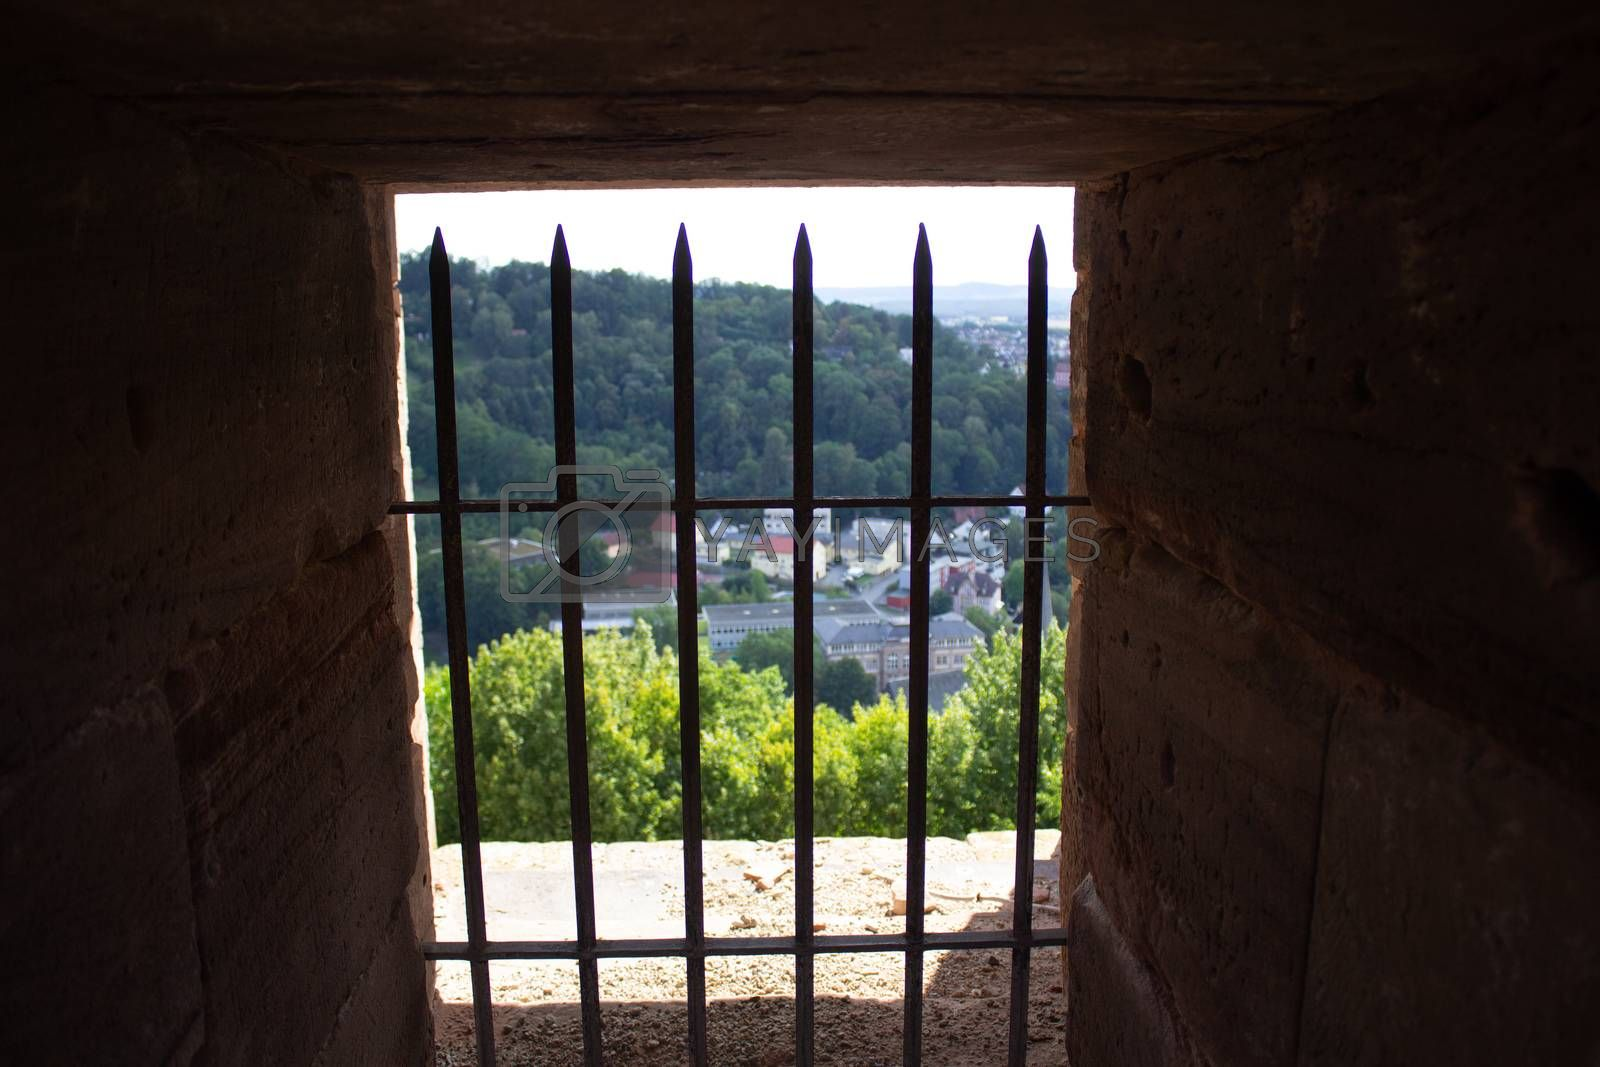 Observation deck of an old castle in Germany. Beautiful views of the surroundings and blue sky with clouds.